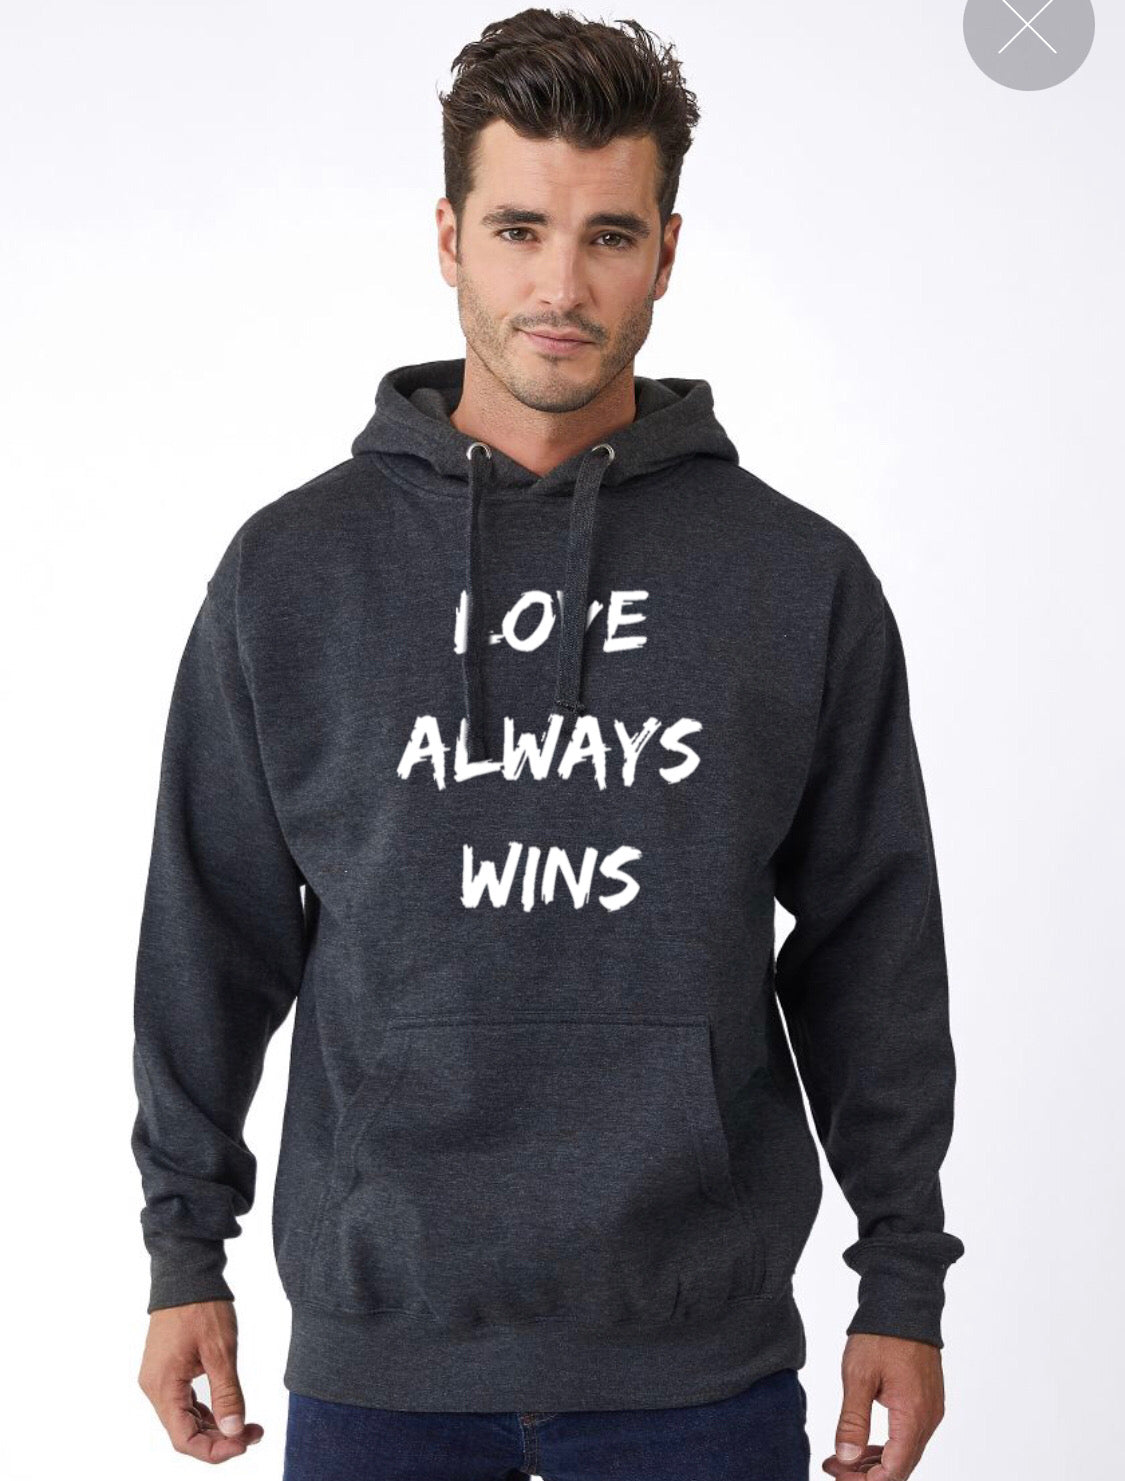 Love Always Wins hoodie (multiple color options)